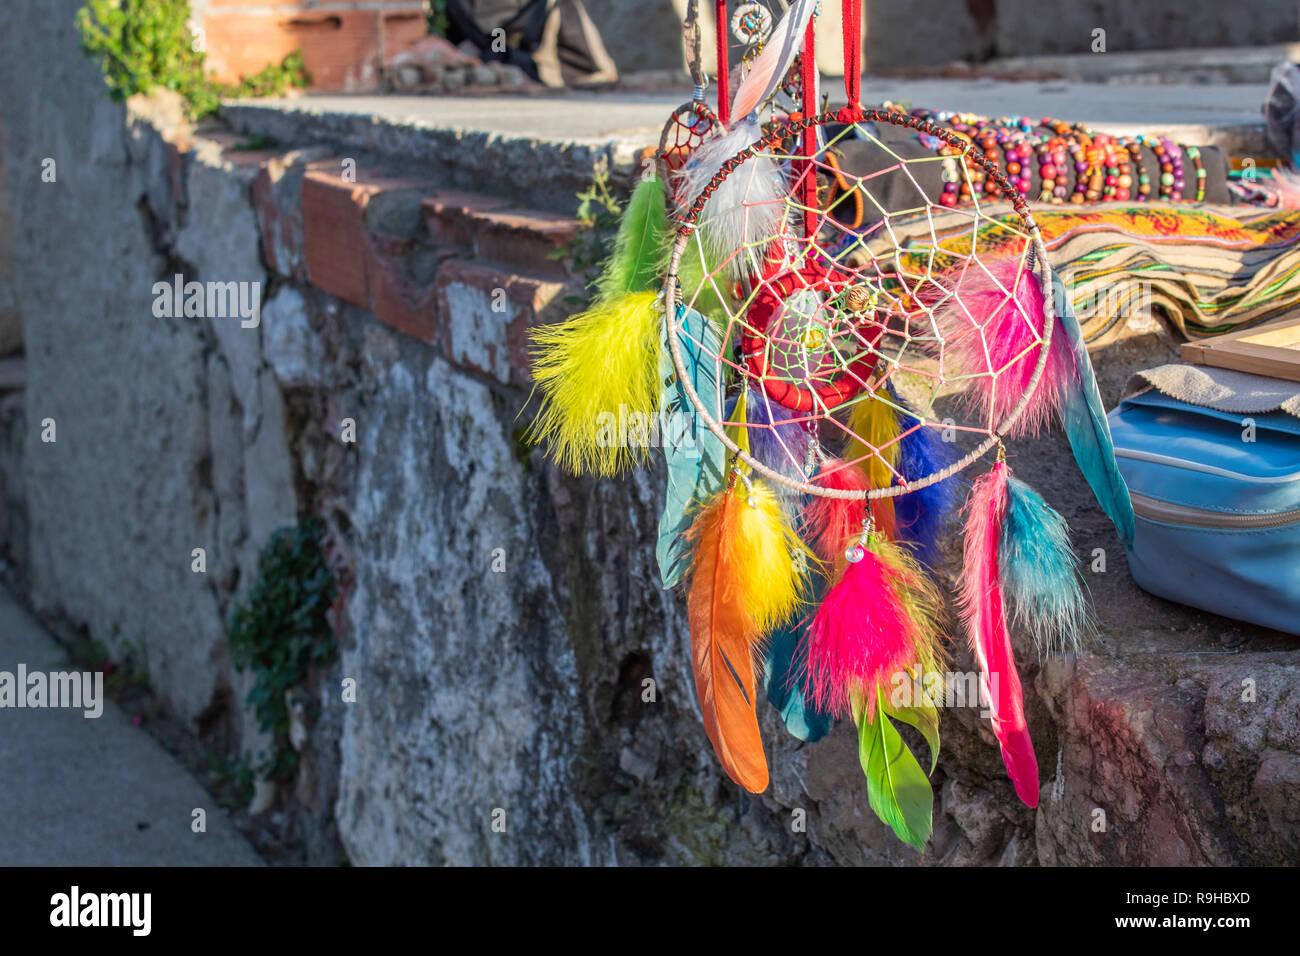 Colorful Dreamcatcher - Stock Image